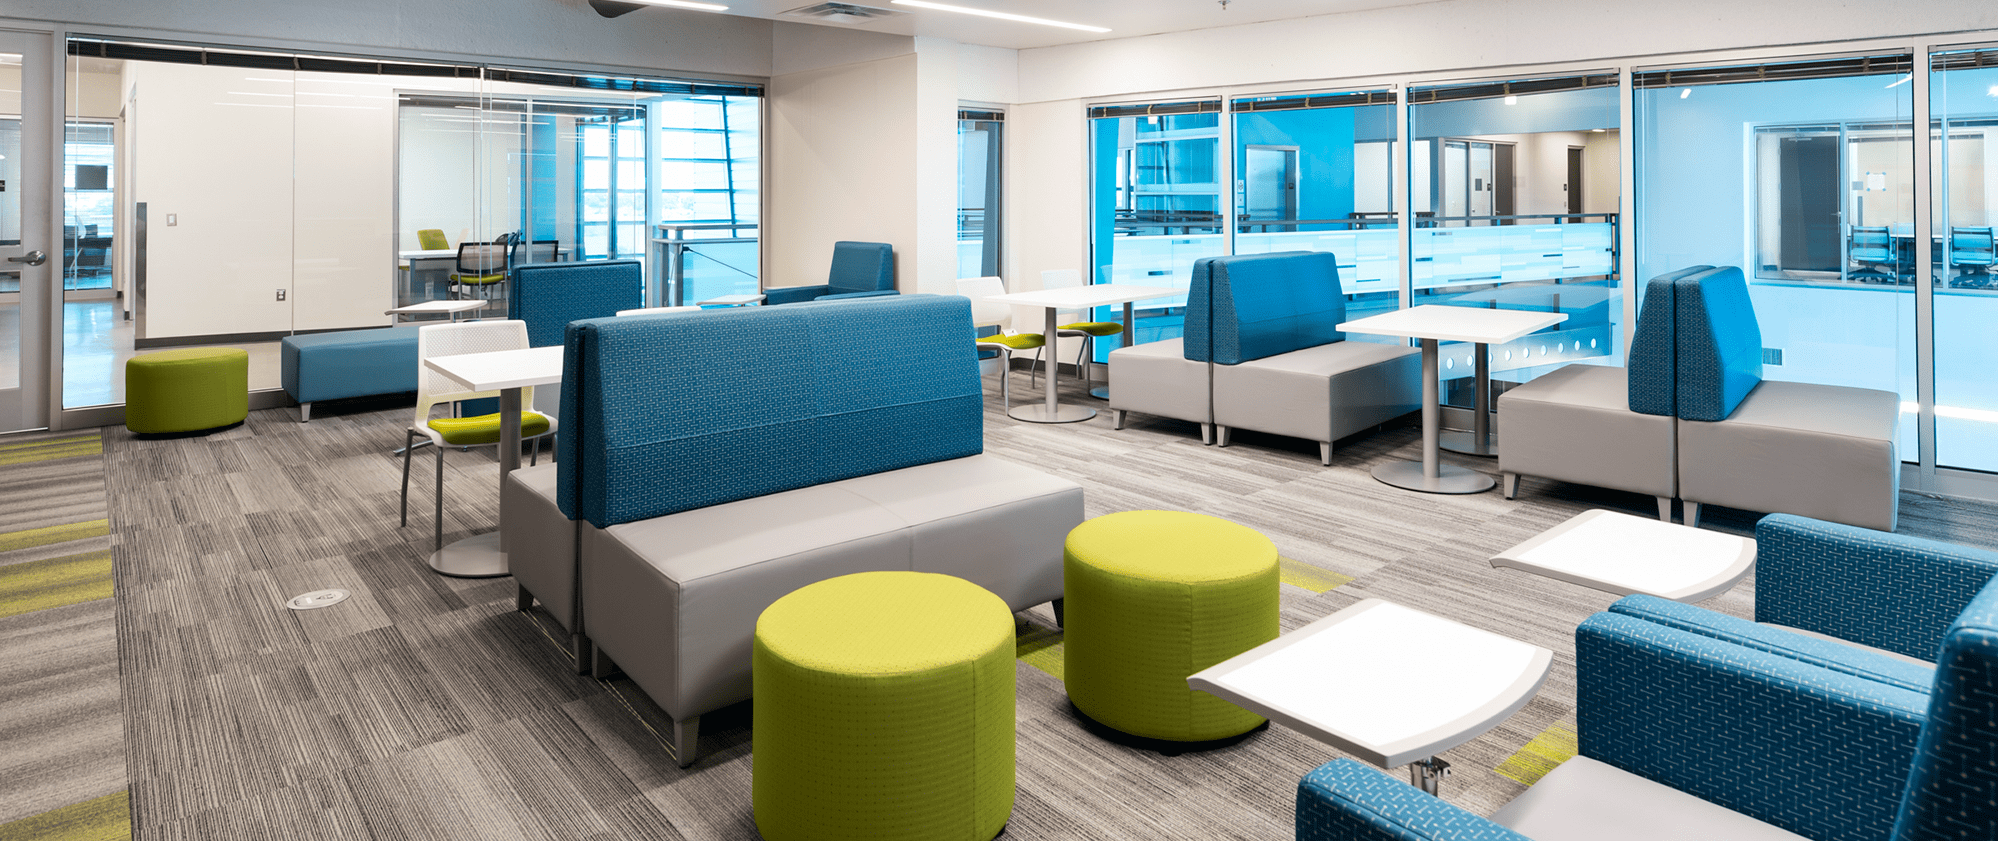 Student lobby with modern seating including tables, chairs and individual work stations.